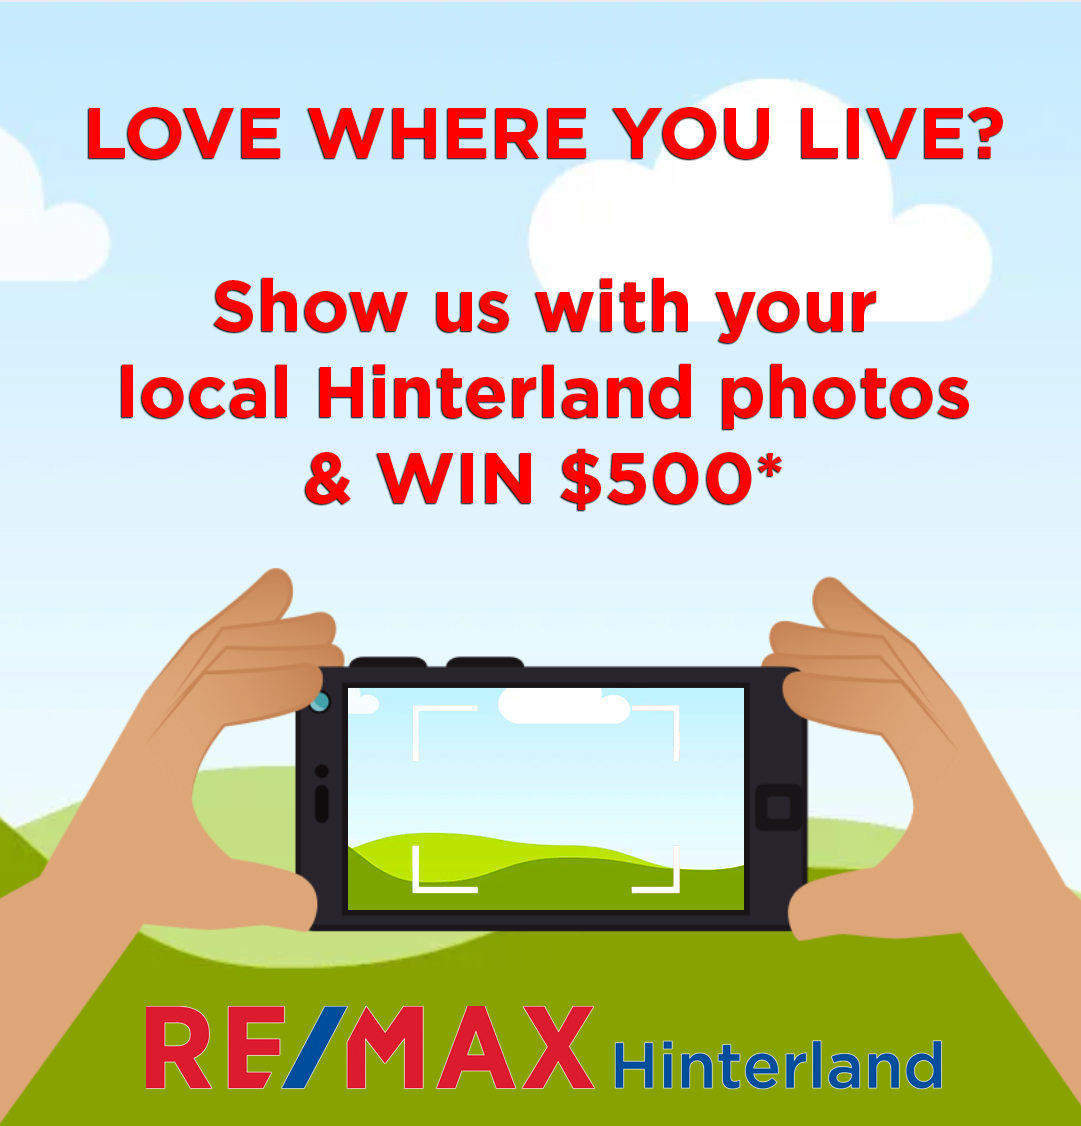 Love where you live photo competition